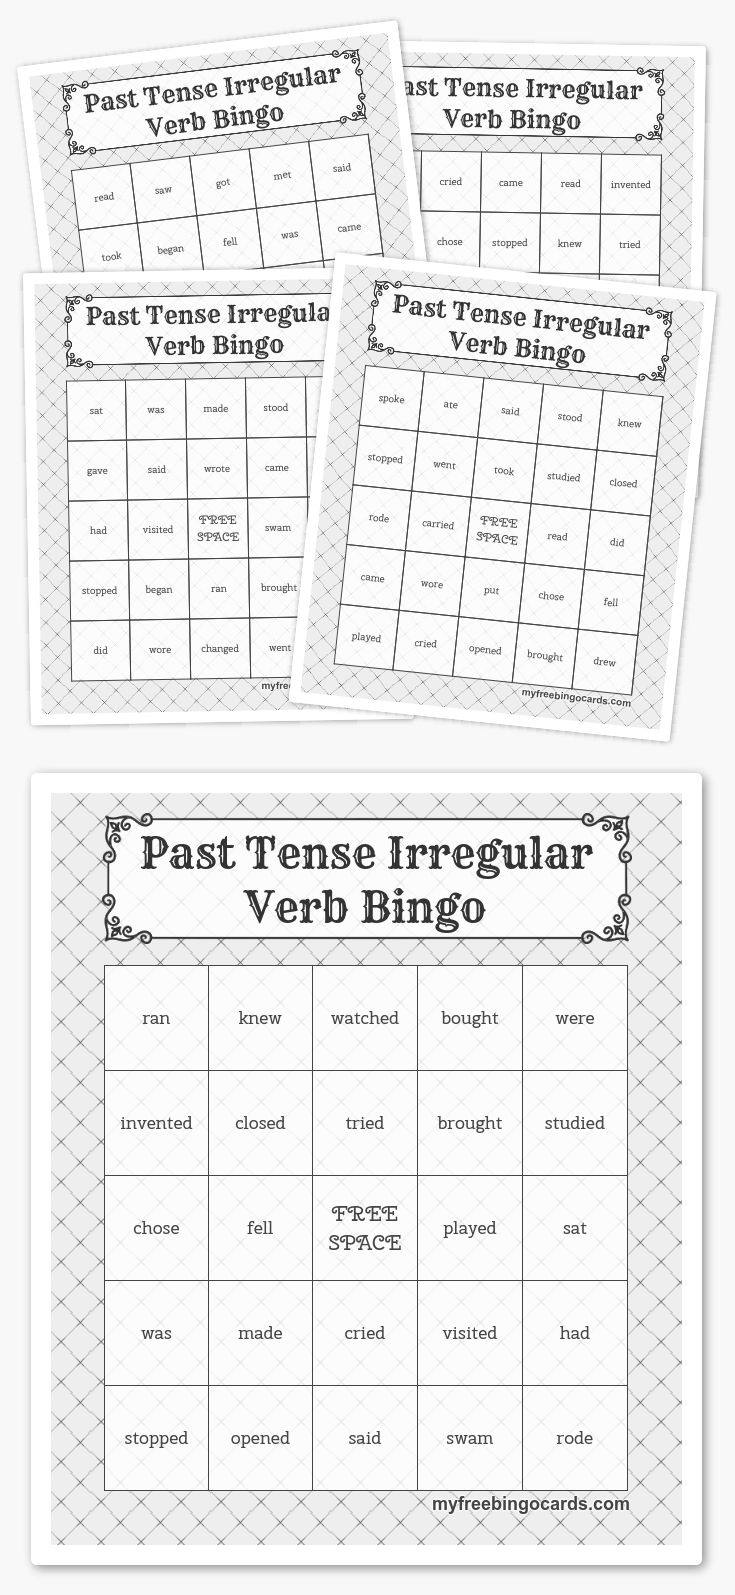 Past Tense Irregular Verb Bingo